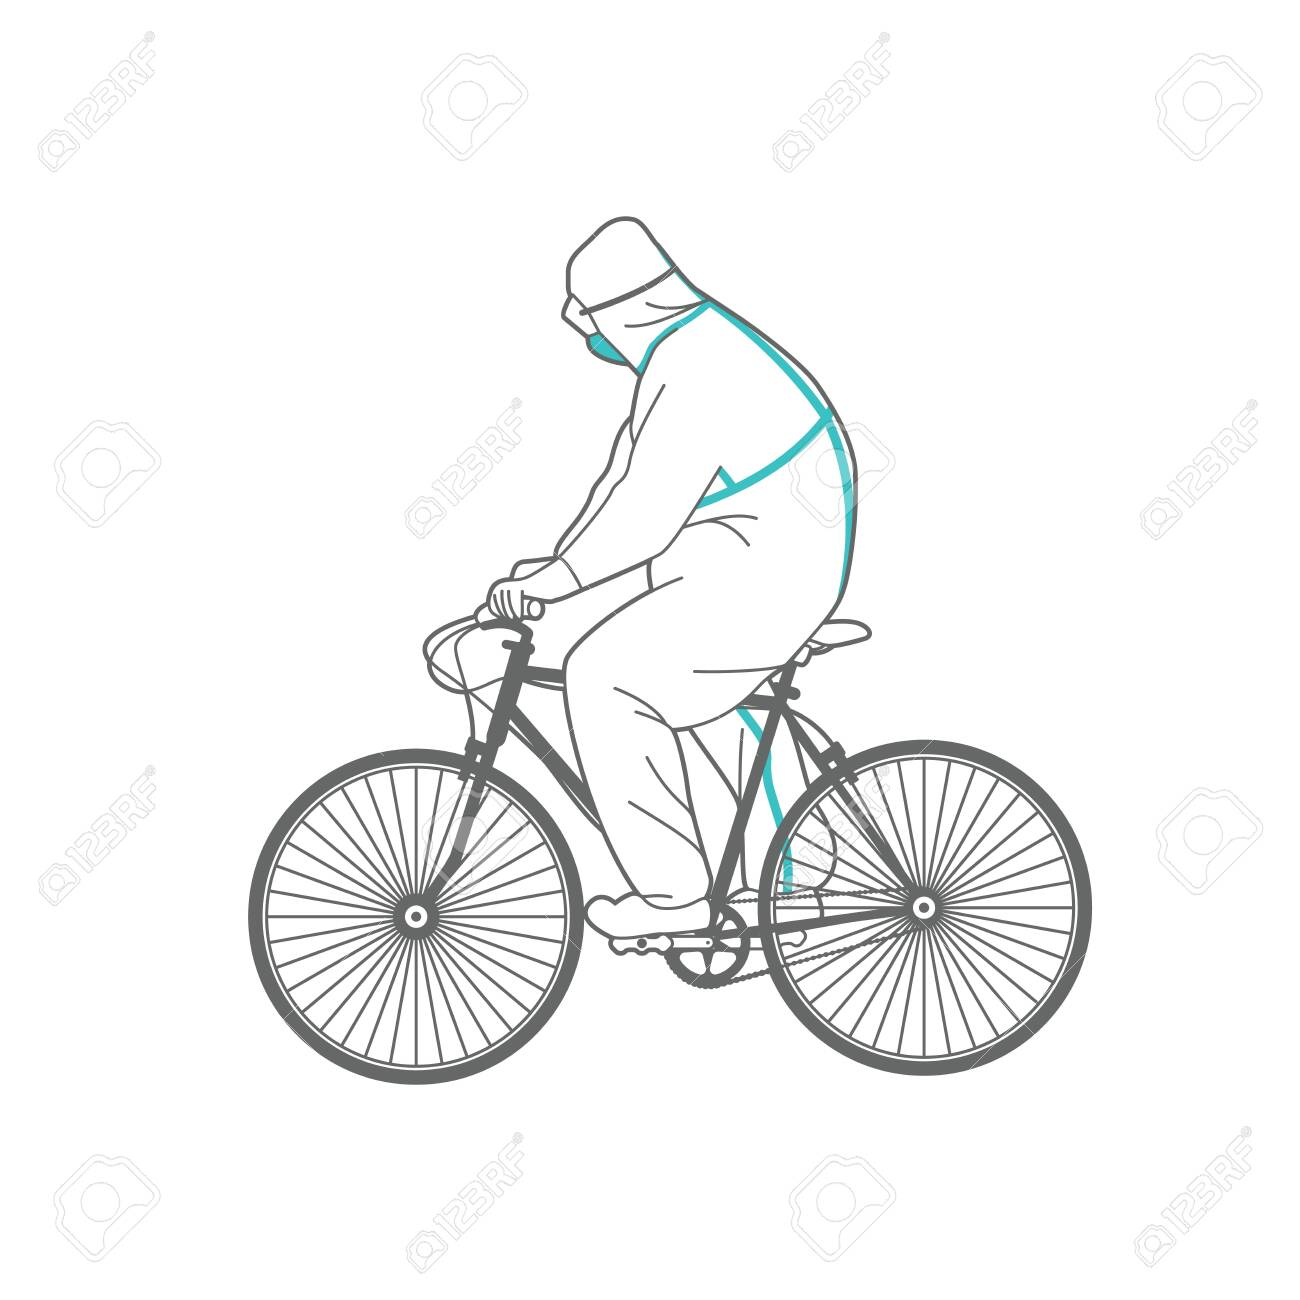 Man in protective clothing on a bicycle. - 146217769